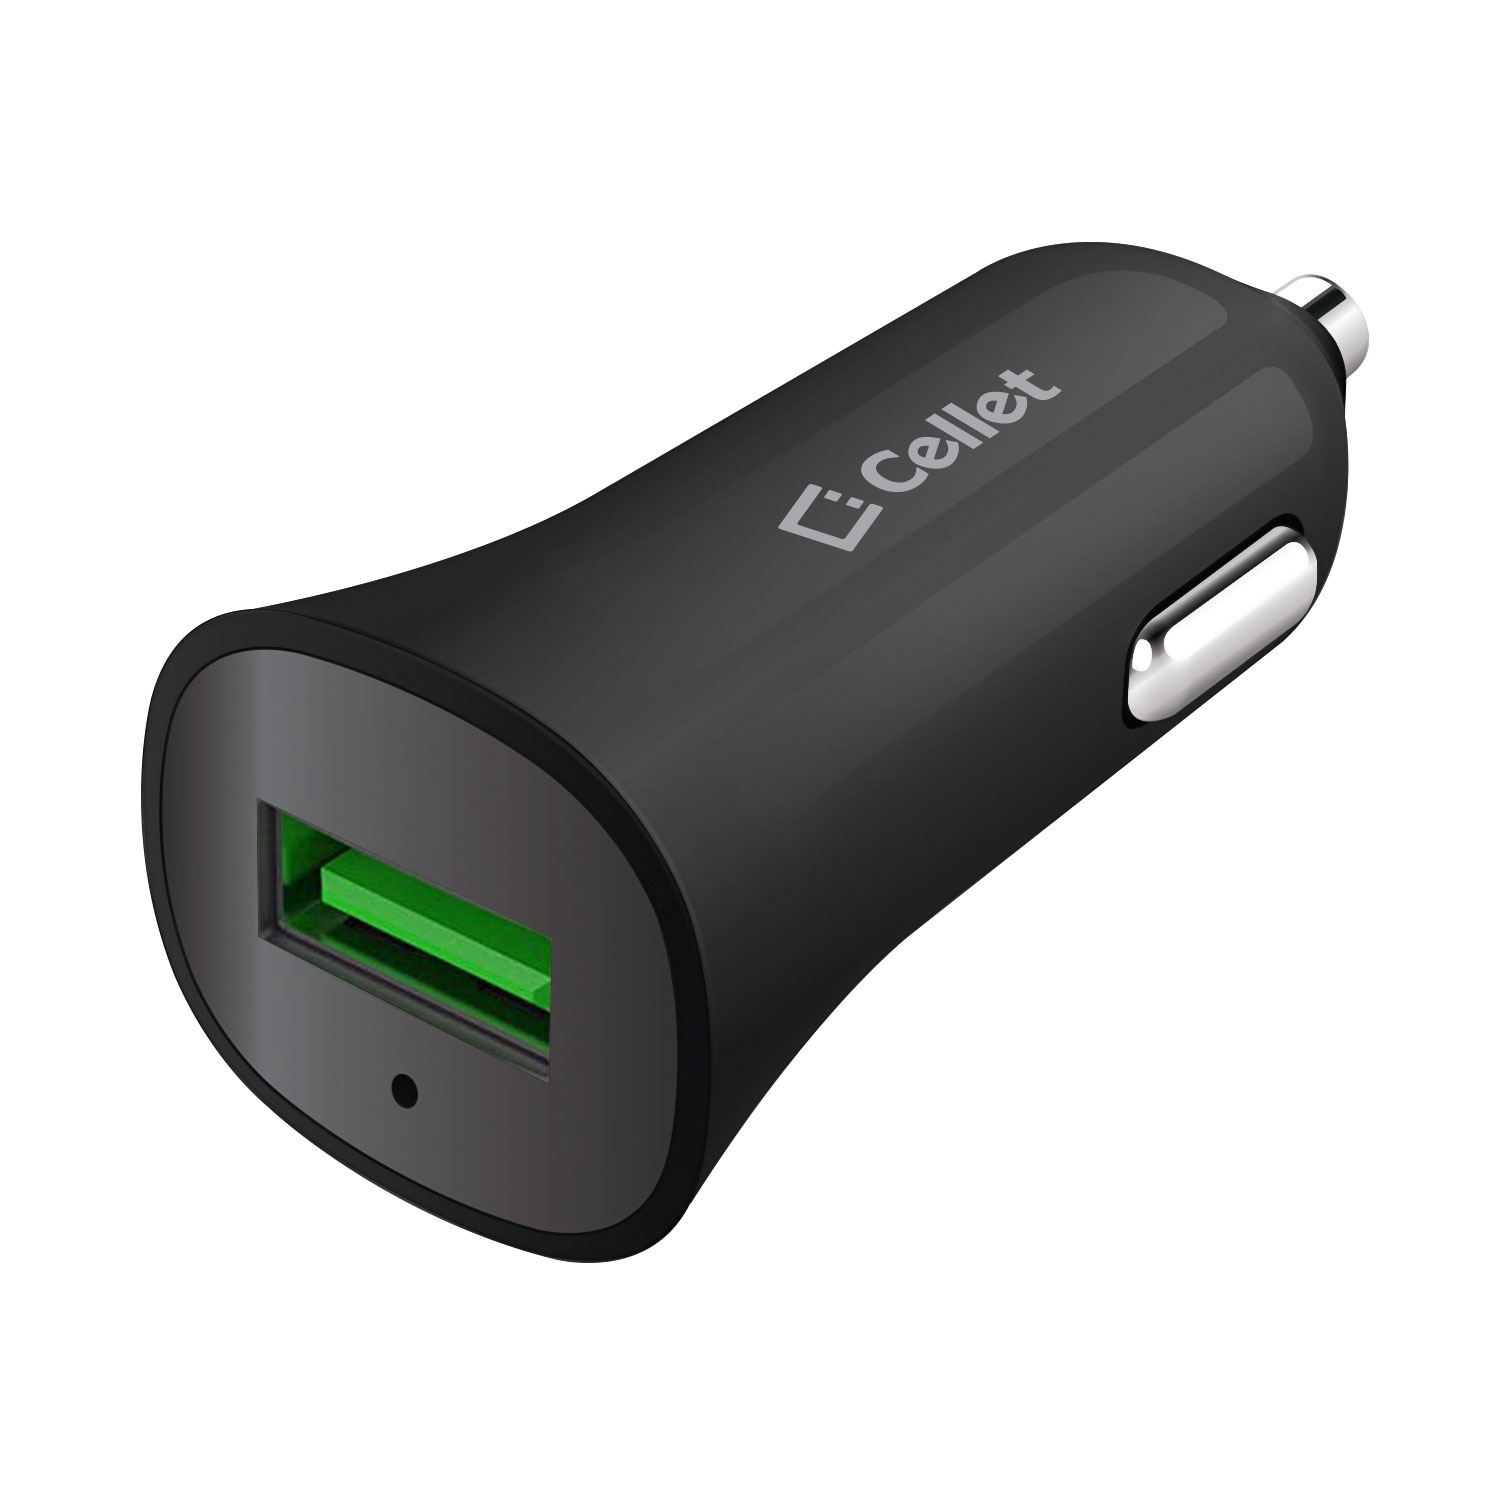 Car Charger Quick Charge 3.0 Black